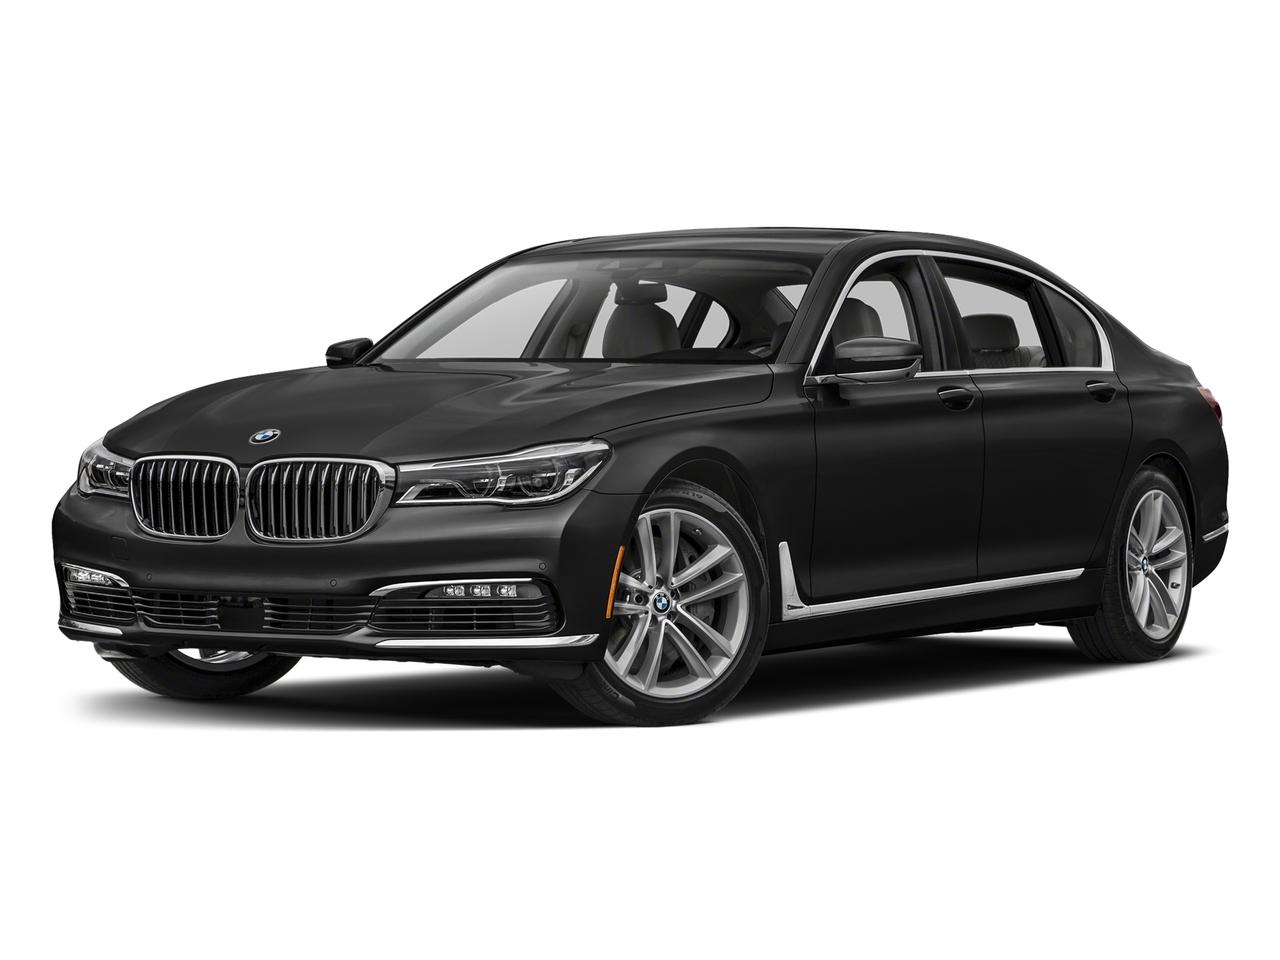 2017 BMW 750i xDrive Vehicle Photo in Charleston, SC 29407